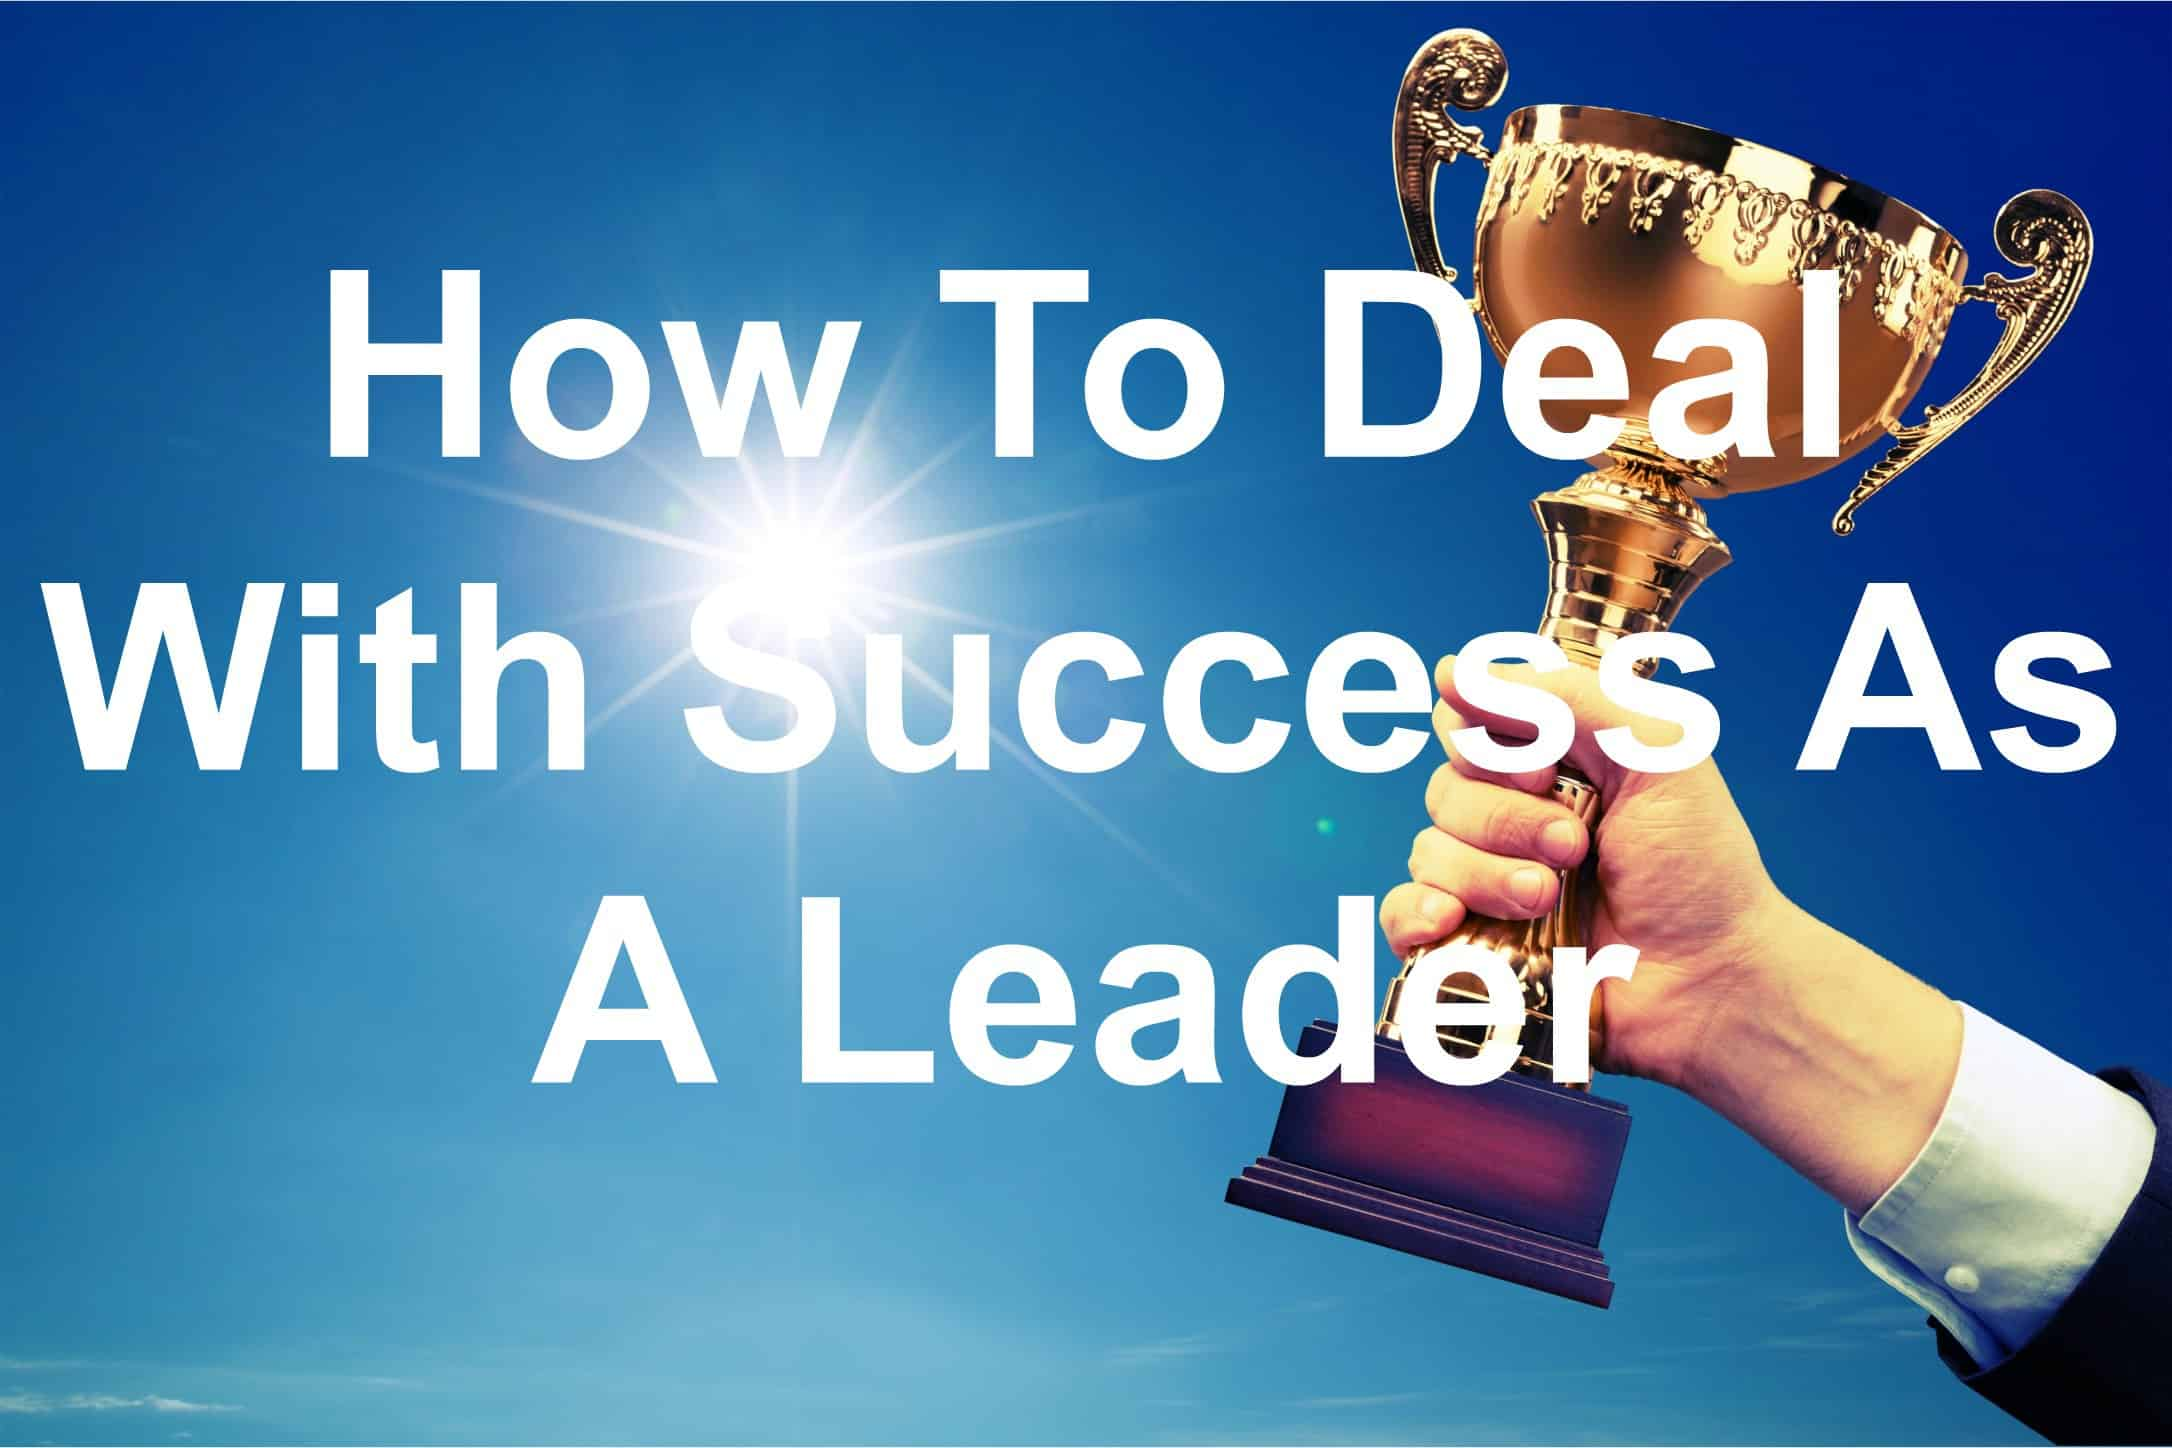 Deal with success properly